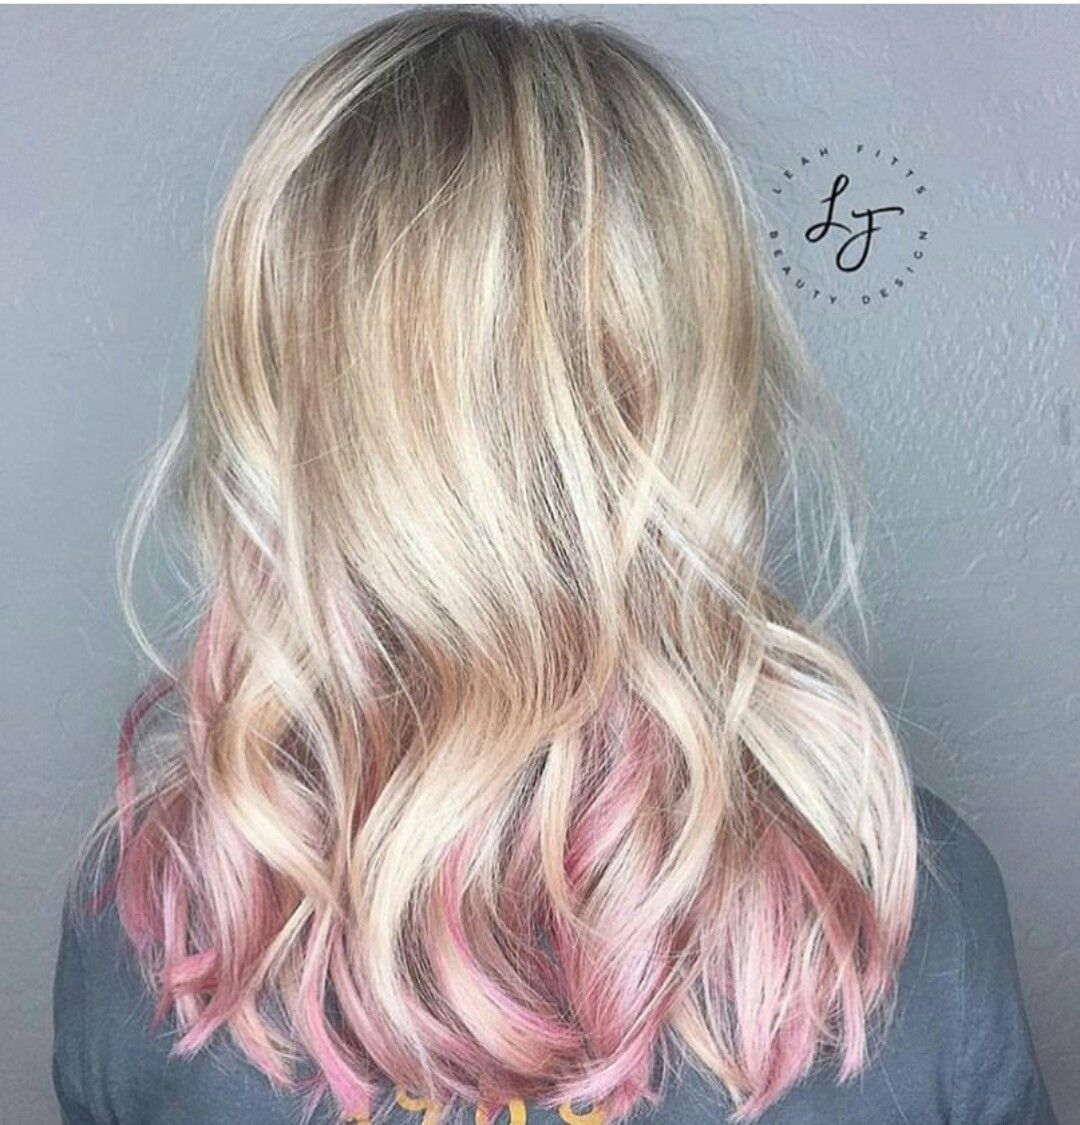 Pin By Dianna Wobler Kammer On Hair Pinterest Hair Coloring